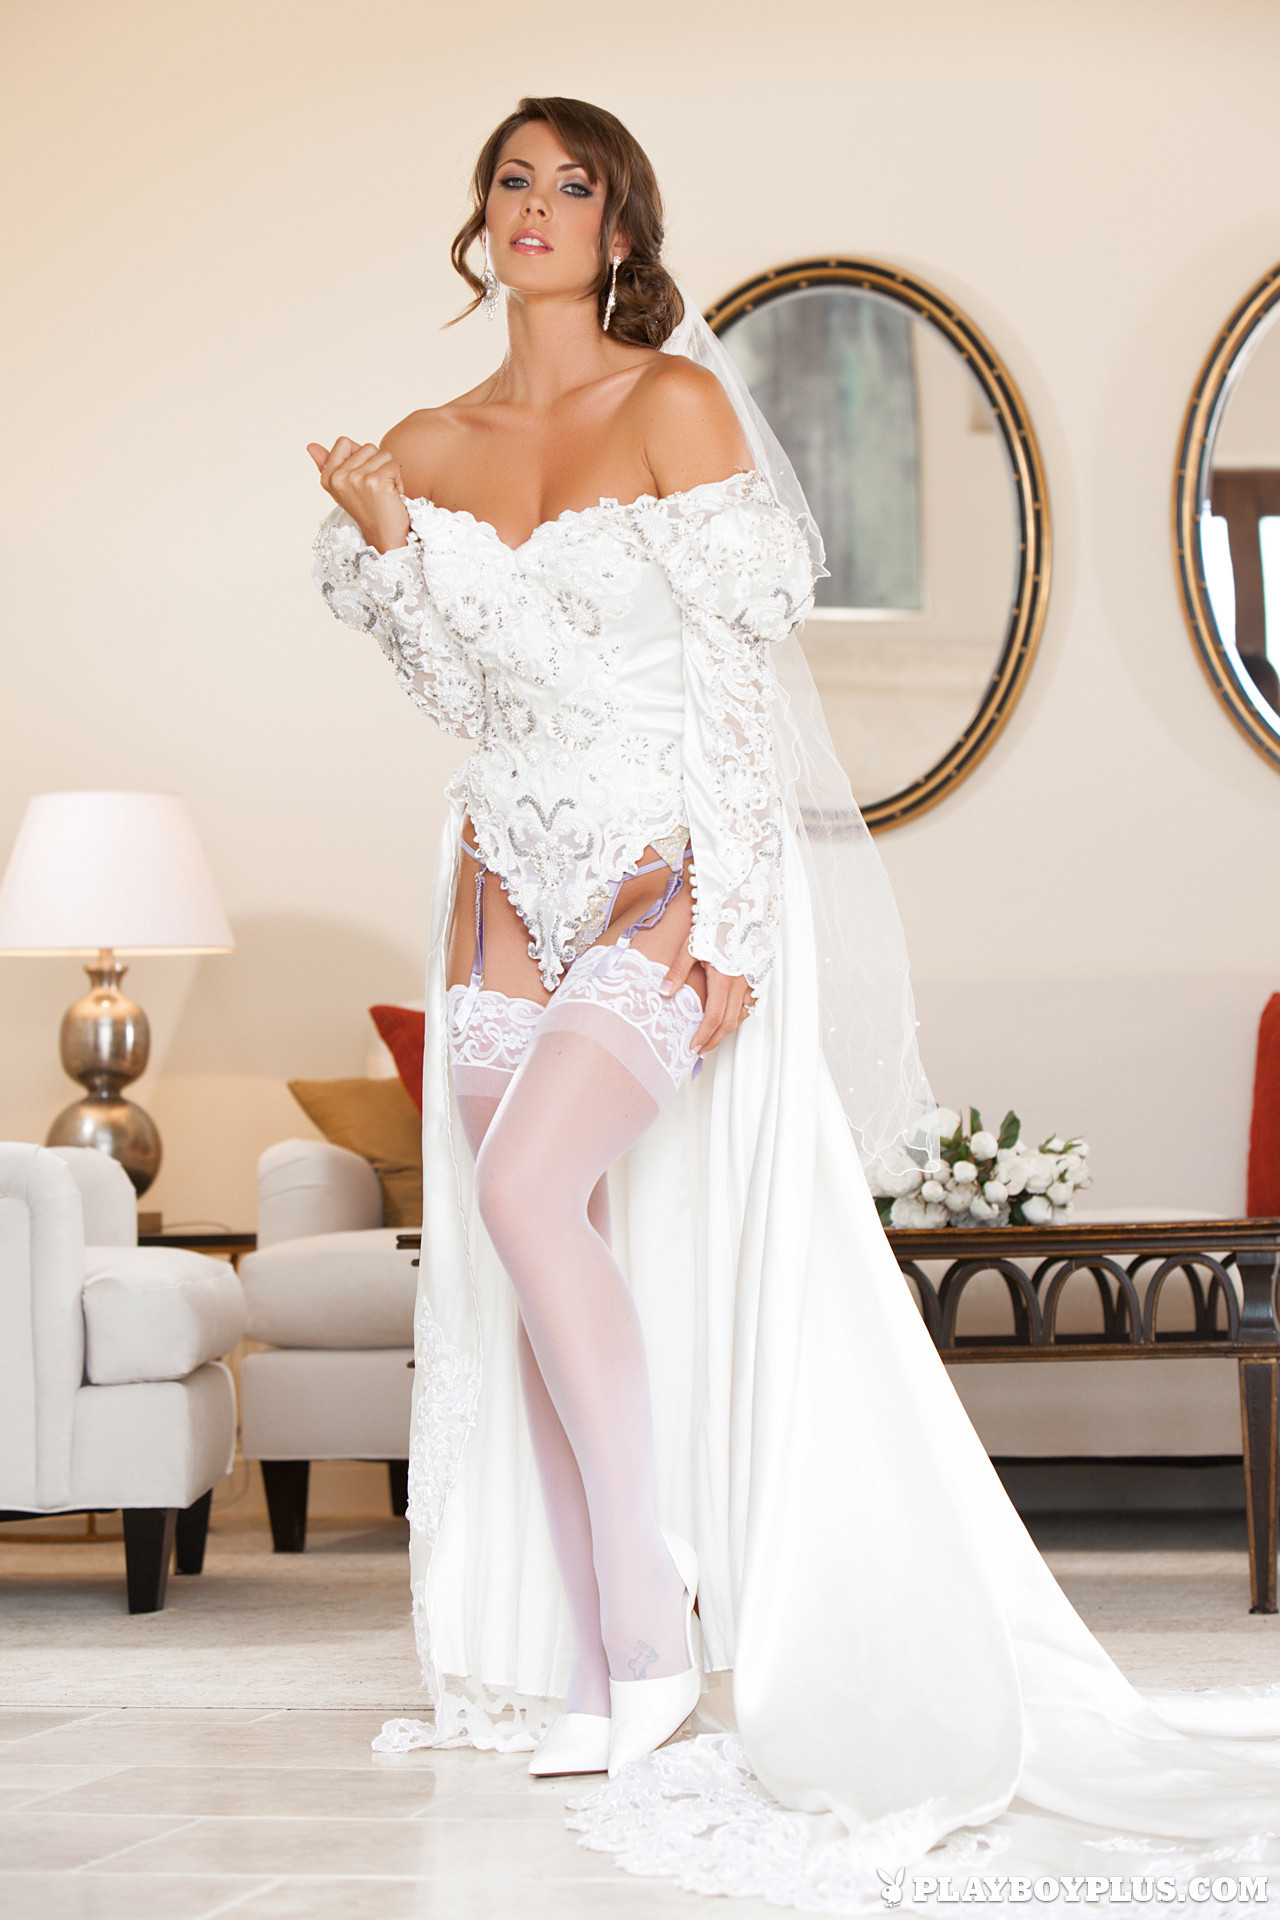 sex-bride-slut-lingerie-mature-mom